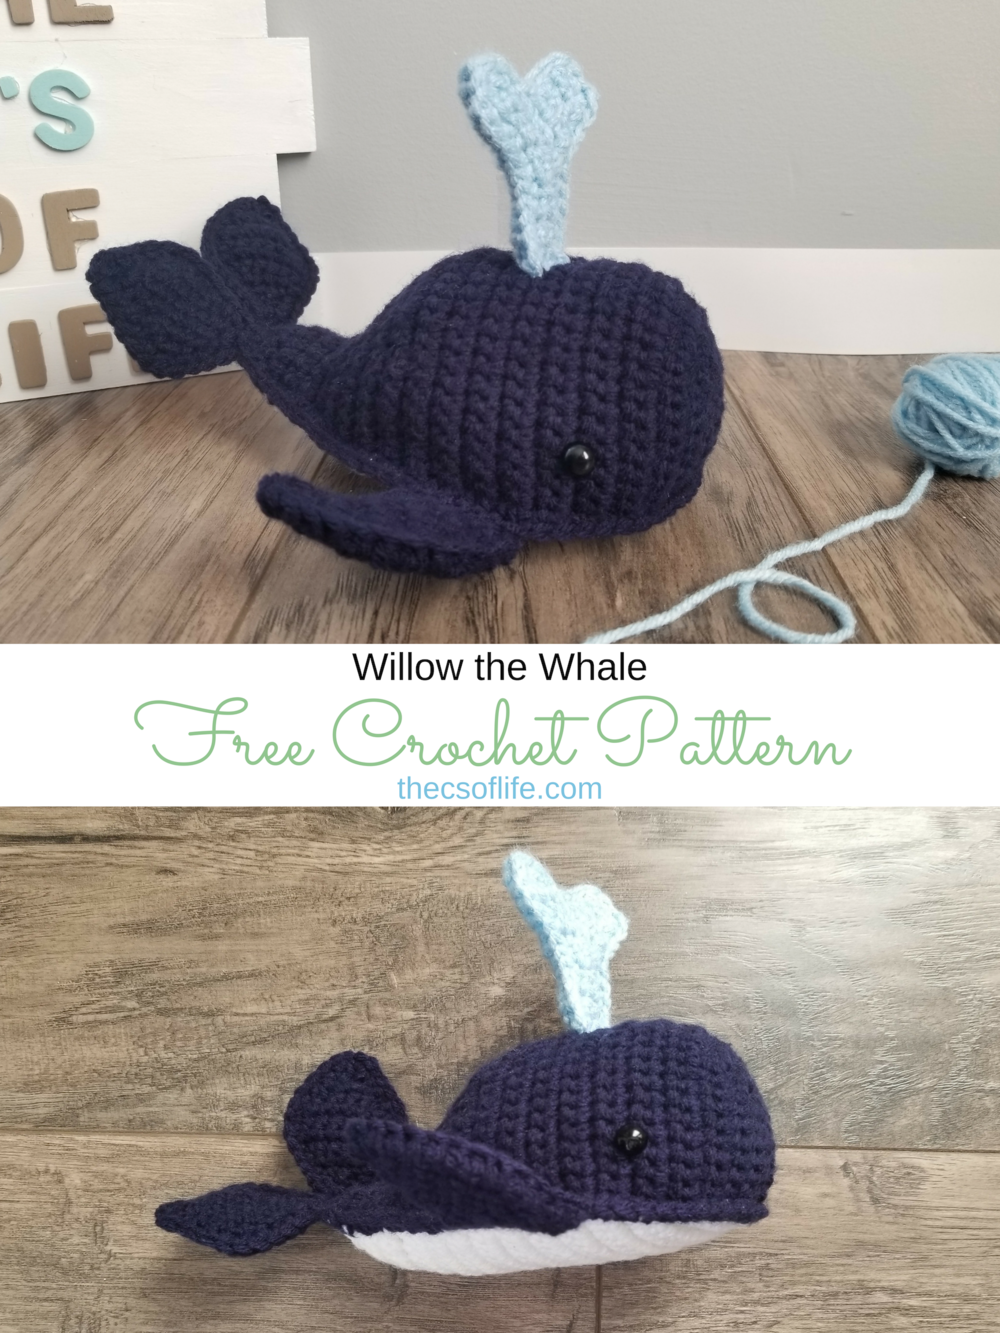 Willow the Whale - Free Crochet Pattern